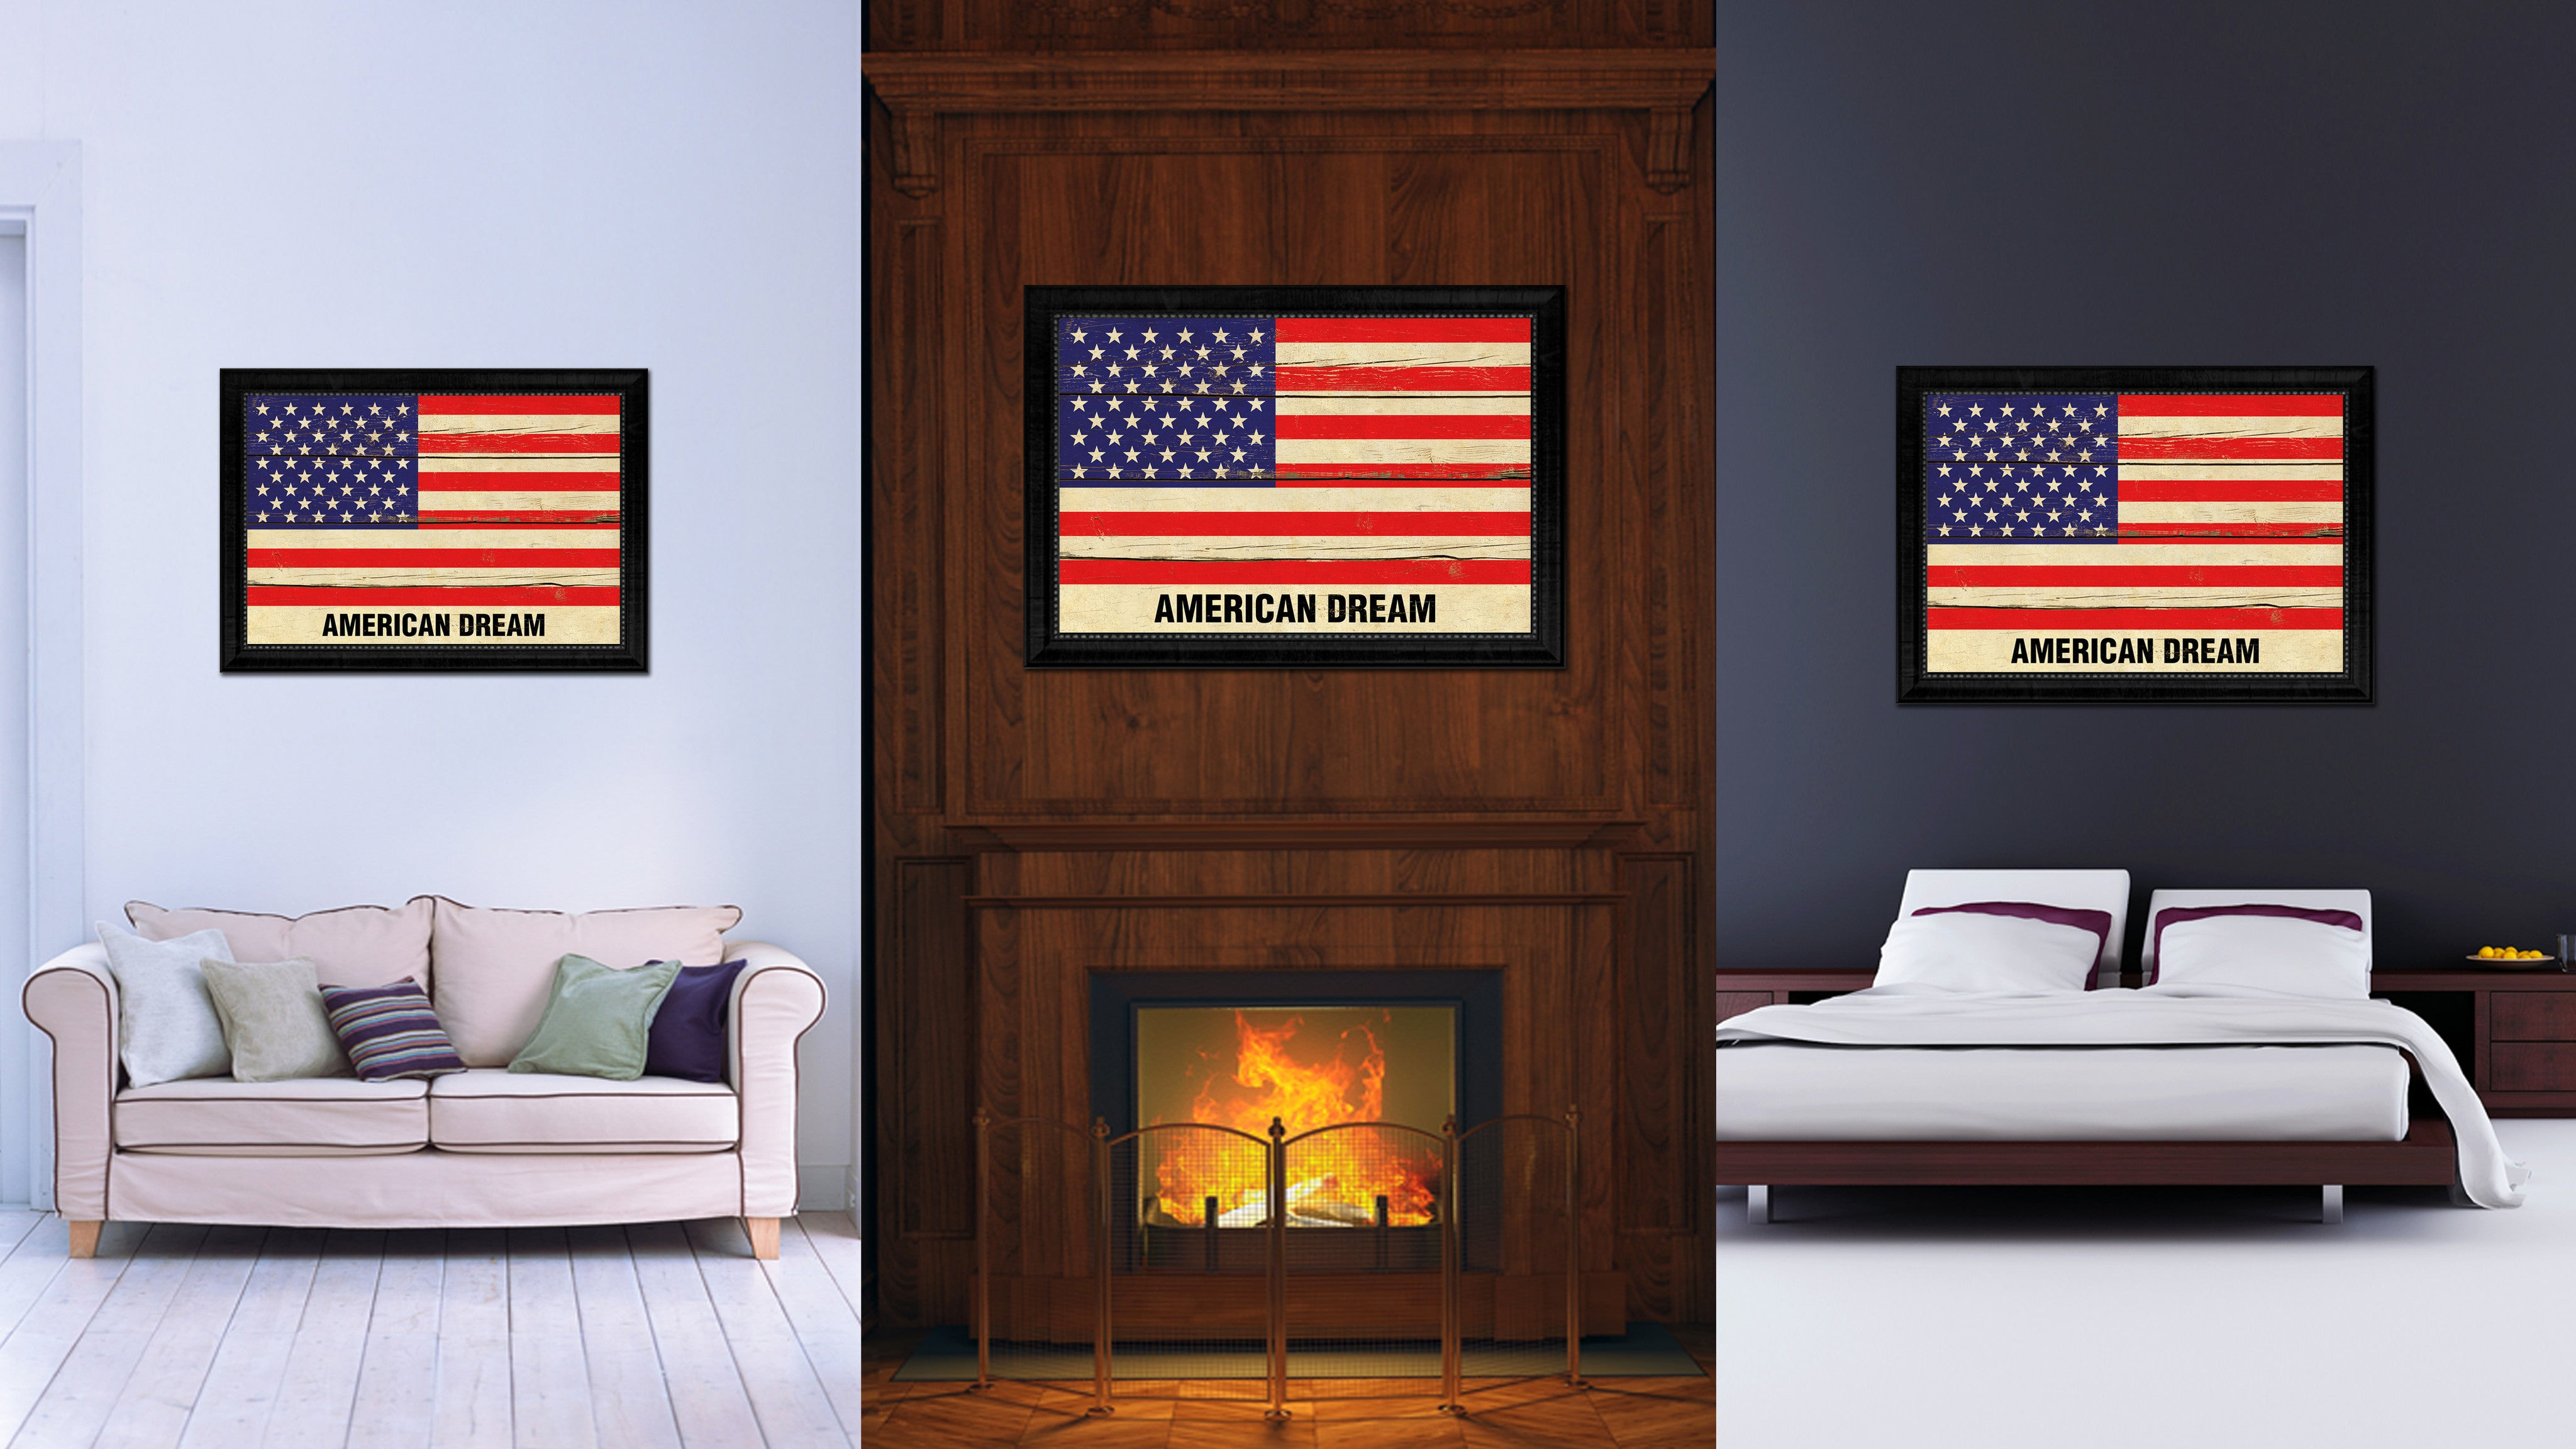 USA American Dream Flag Vintage Canvas Print with Black Picture Frame Home Decor Wall Art Decoration Gift Ideas